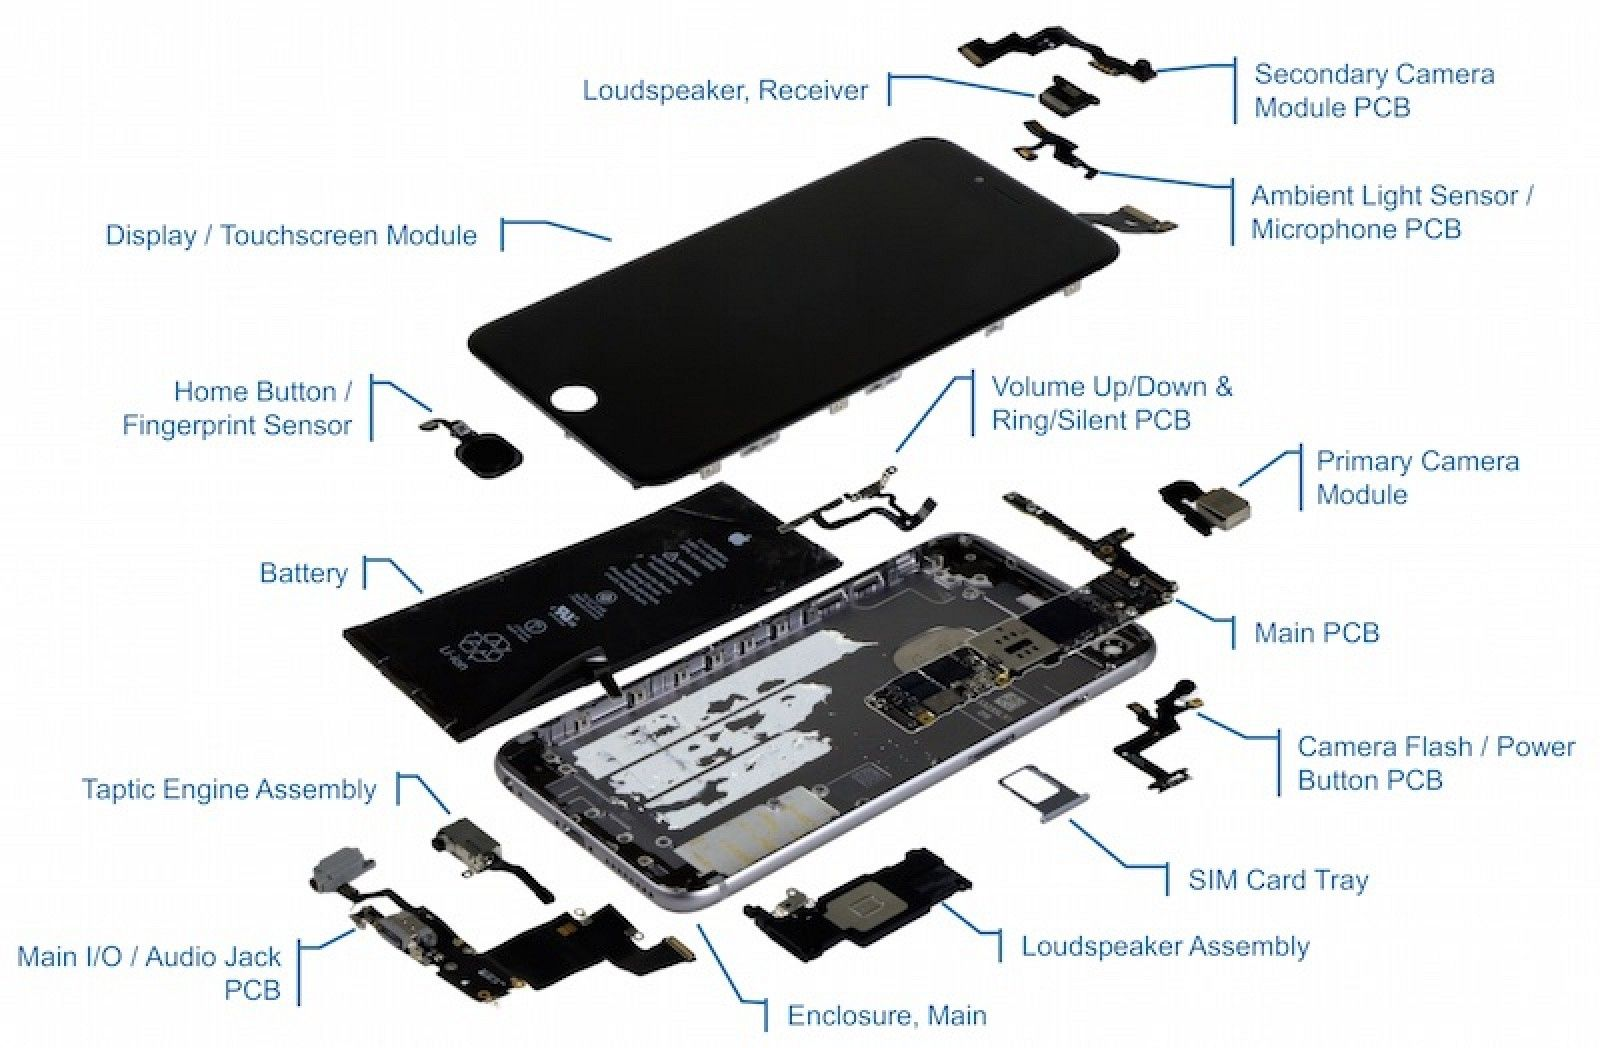 iphone parts wholesale we offer smartphone accessories includes a wide 2668